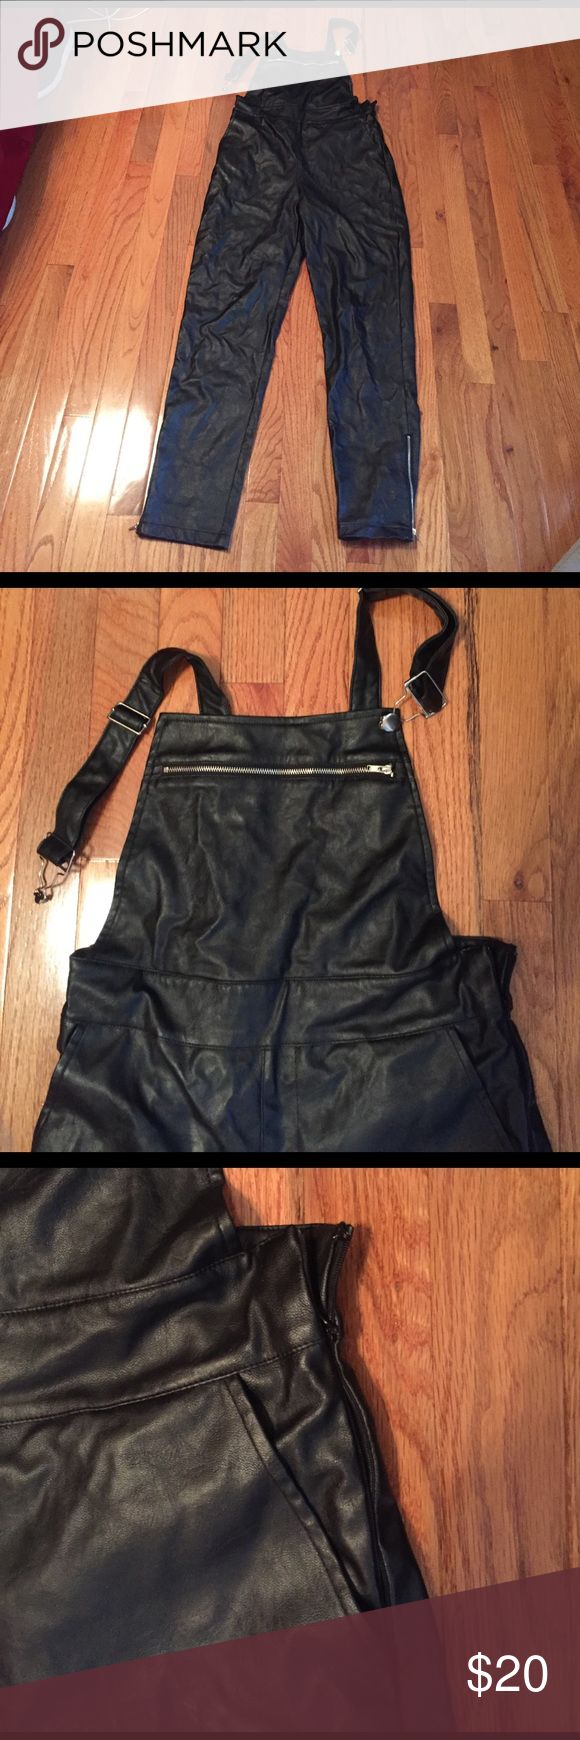 Black Leather Overalls Black Faux leather overalls from nasty gal. Great outfit maker. Size medium, no stretch. Straight leg with zipper detail. Side zipper closure. Side zipper is broken and needs to be replaced. Top right button of Overalls is also missing and needs to be re- attached. (Button is included in pocket, just need to be re- attached). Only worn once, Overalls are in great condition besides the 2 missing pieces. Nasty Gal Other